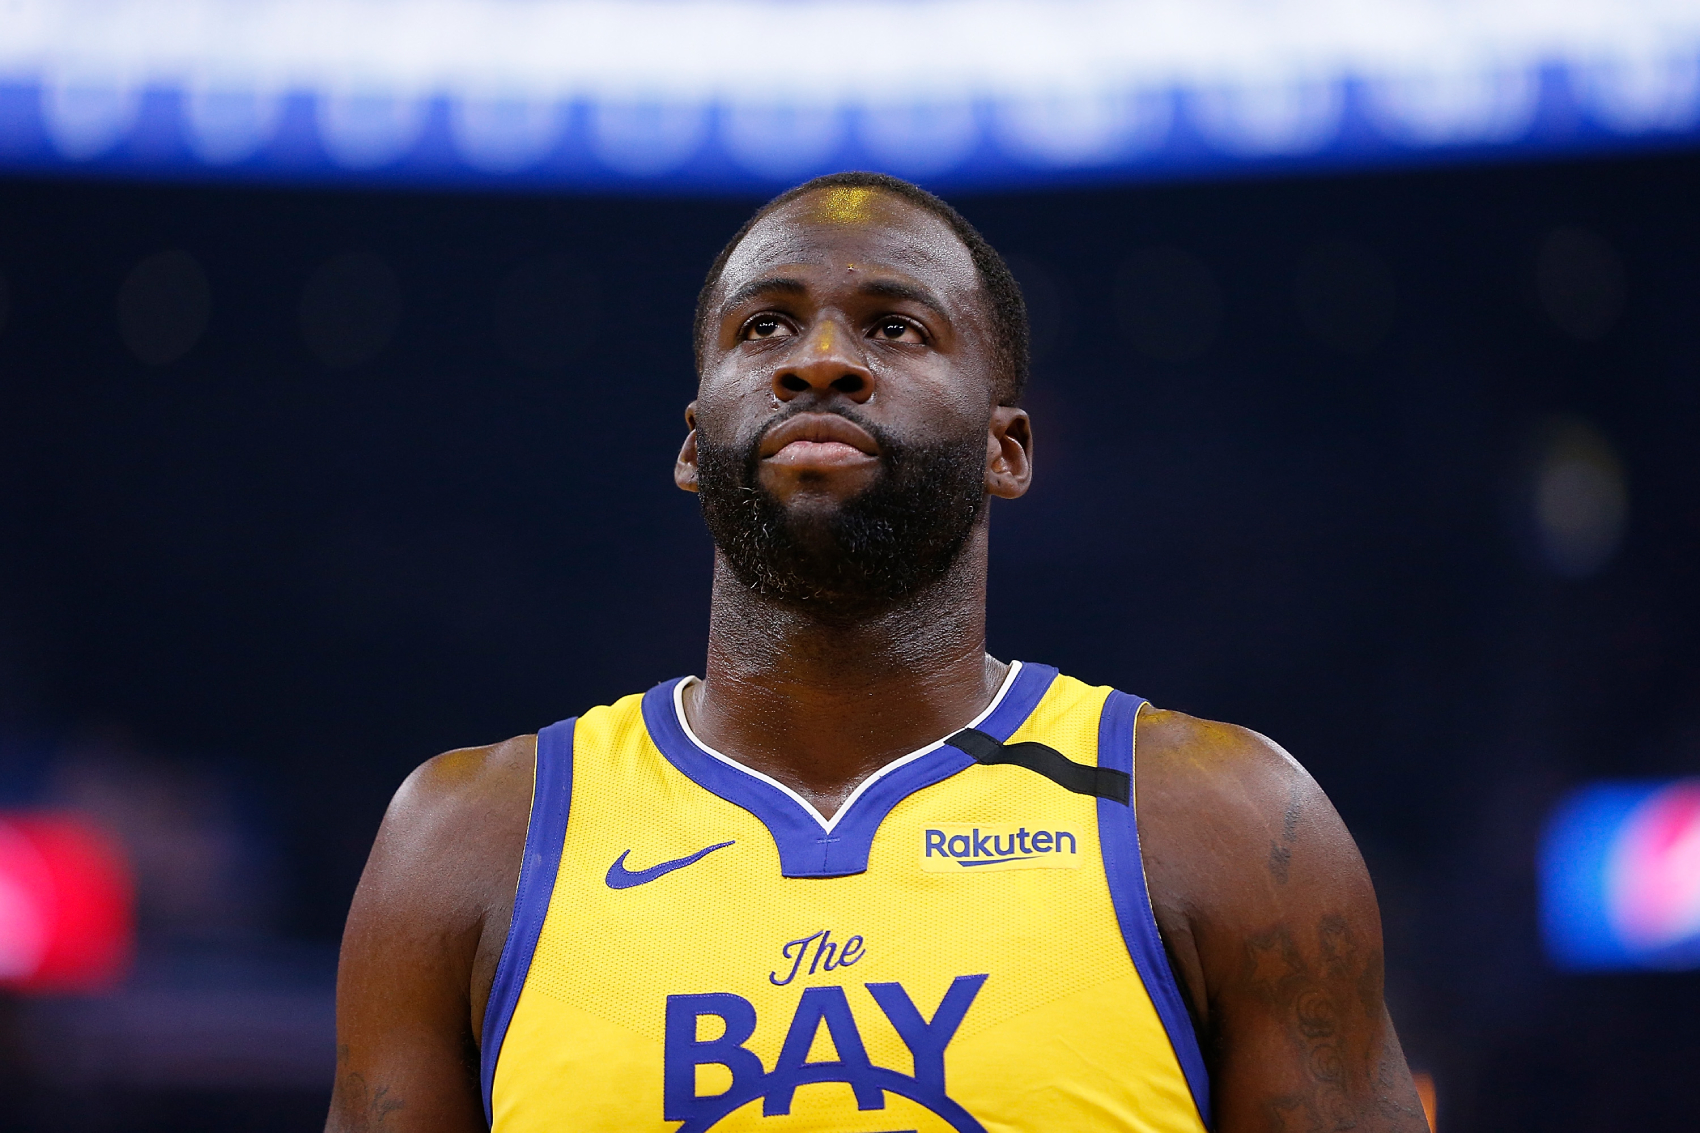 Draymond Green hopes he and the Warriors have a much better season in 2020-21. In fact, he is sending the exact message fans want to hear.